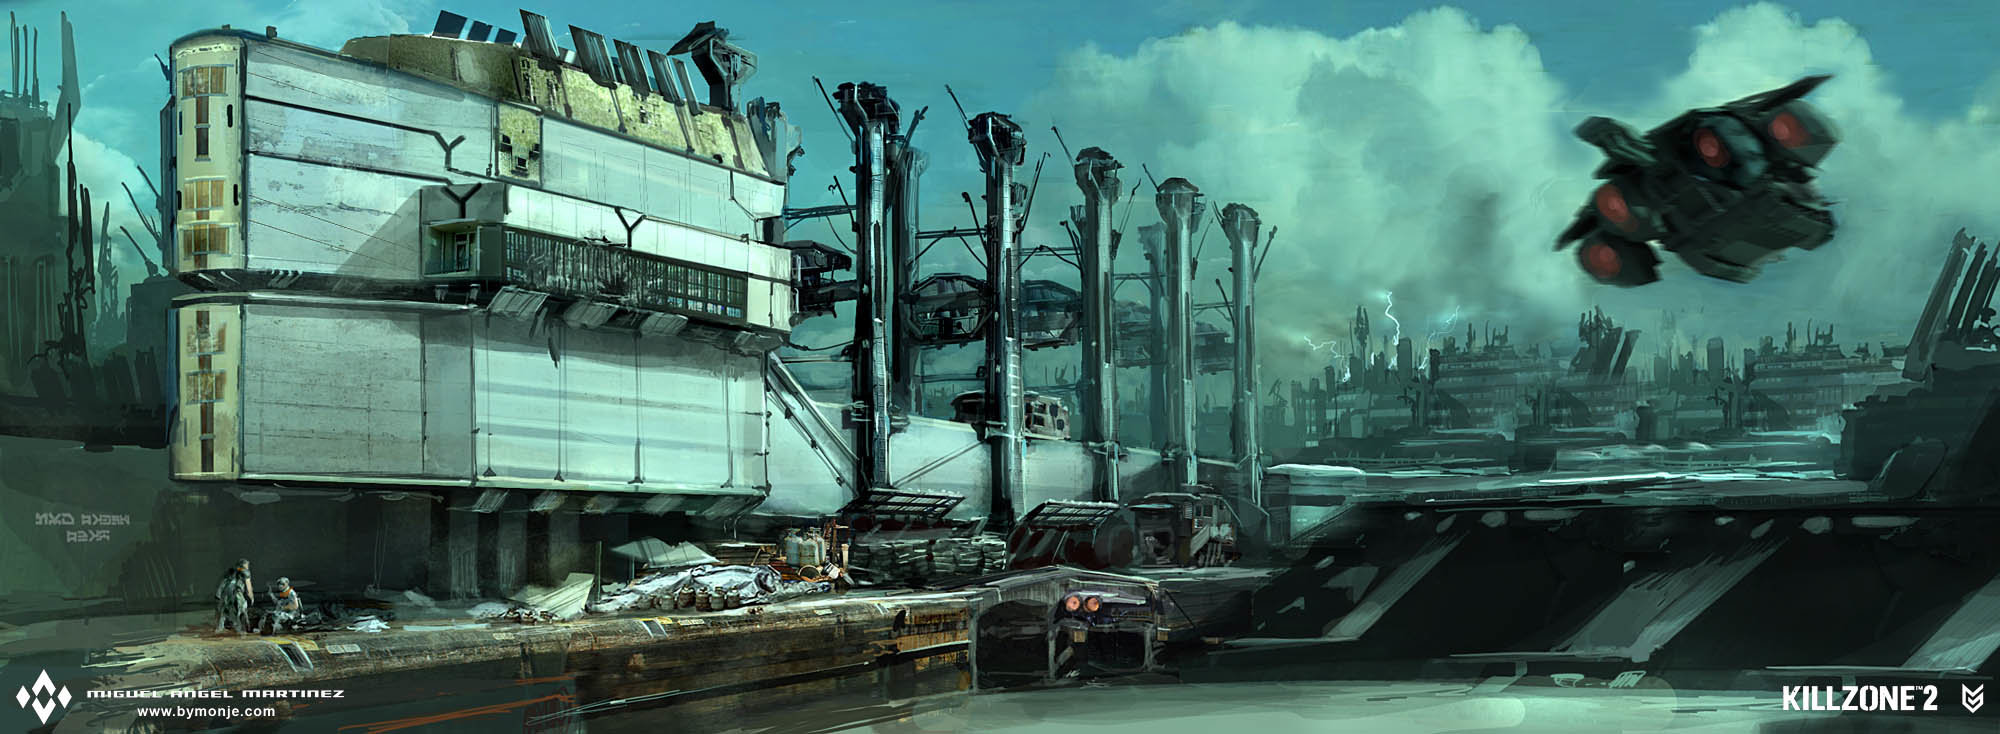 killzone 2 helghan station concept art miguel bymonje